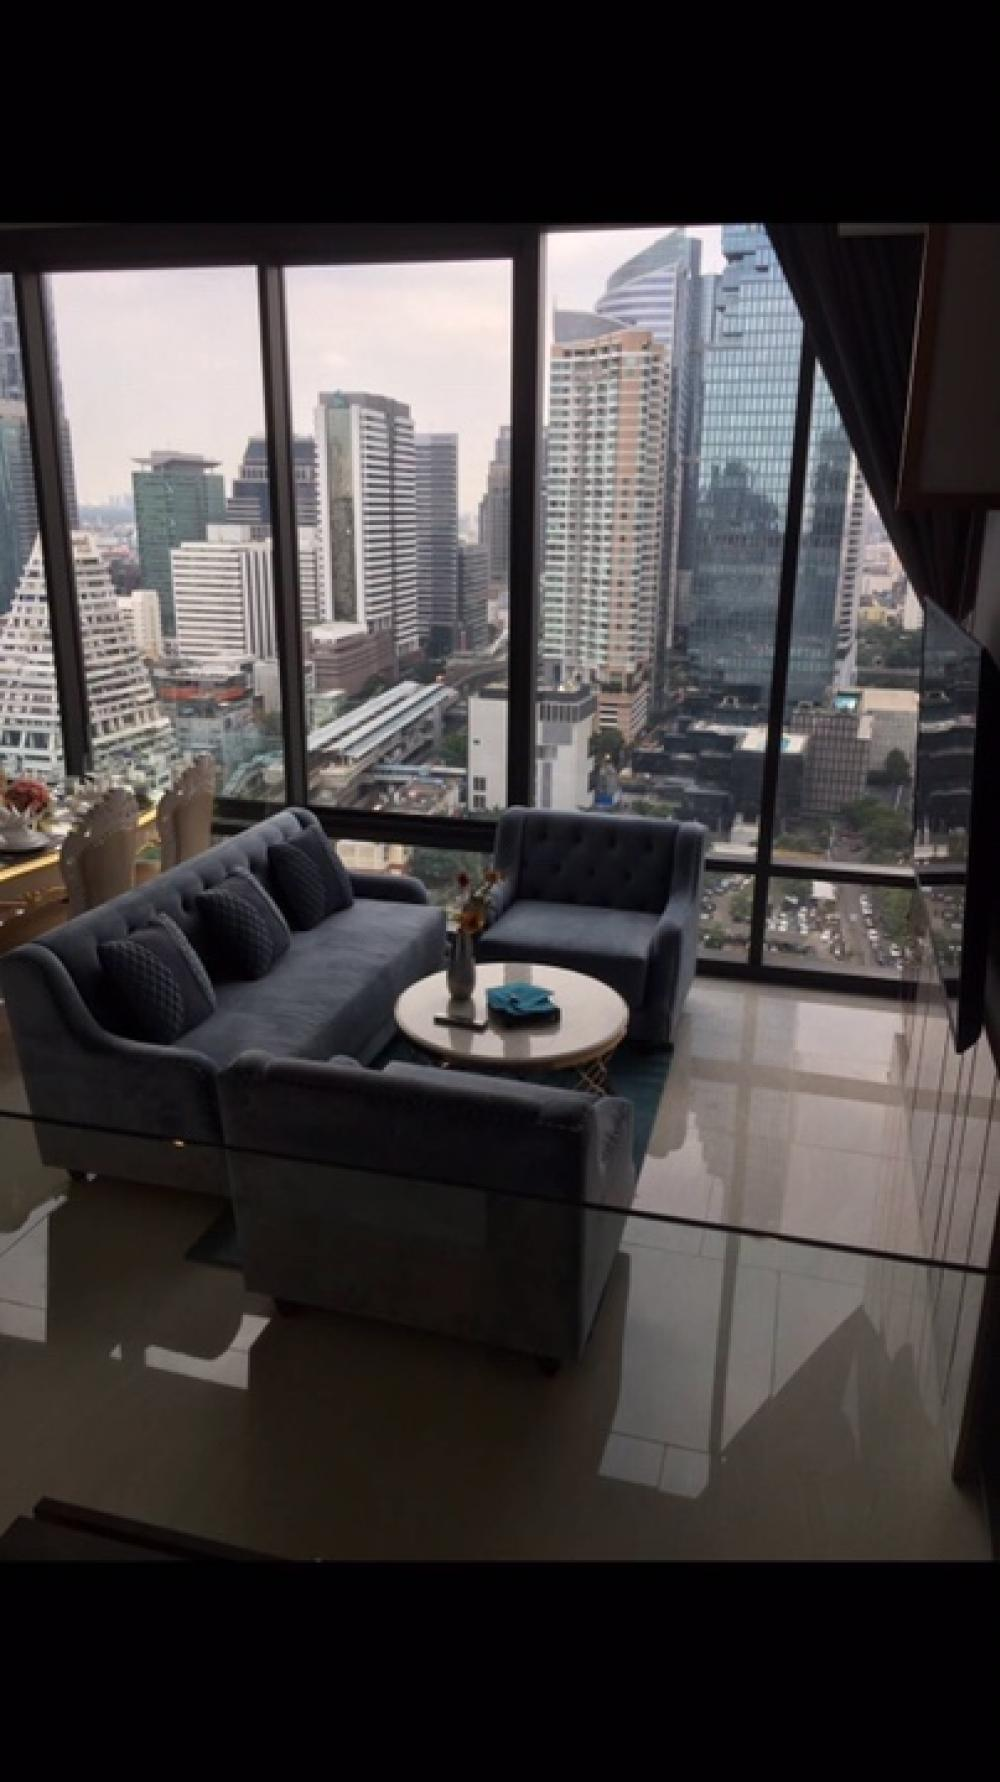 For RentCondoSiam Paragon ,Chulalongkorn,Samyan : For rent Ashton Silom 2 bedrooms, 2 bathrooms, complete electrical appliances, ready to move in, please contact 0654649497.